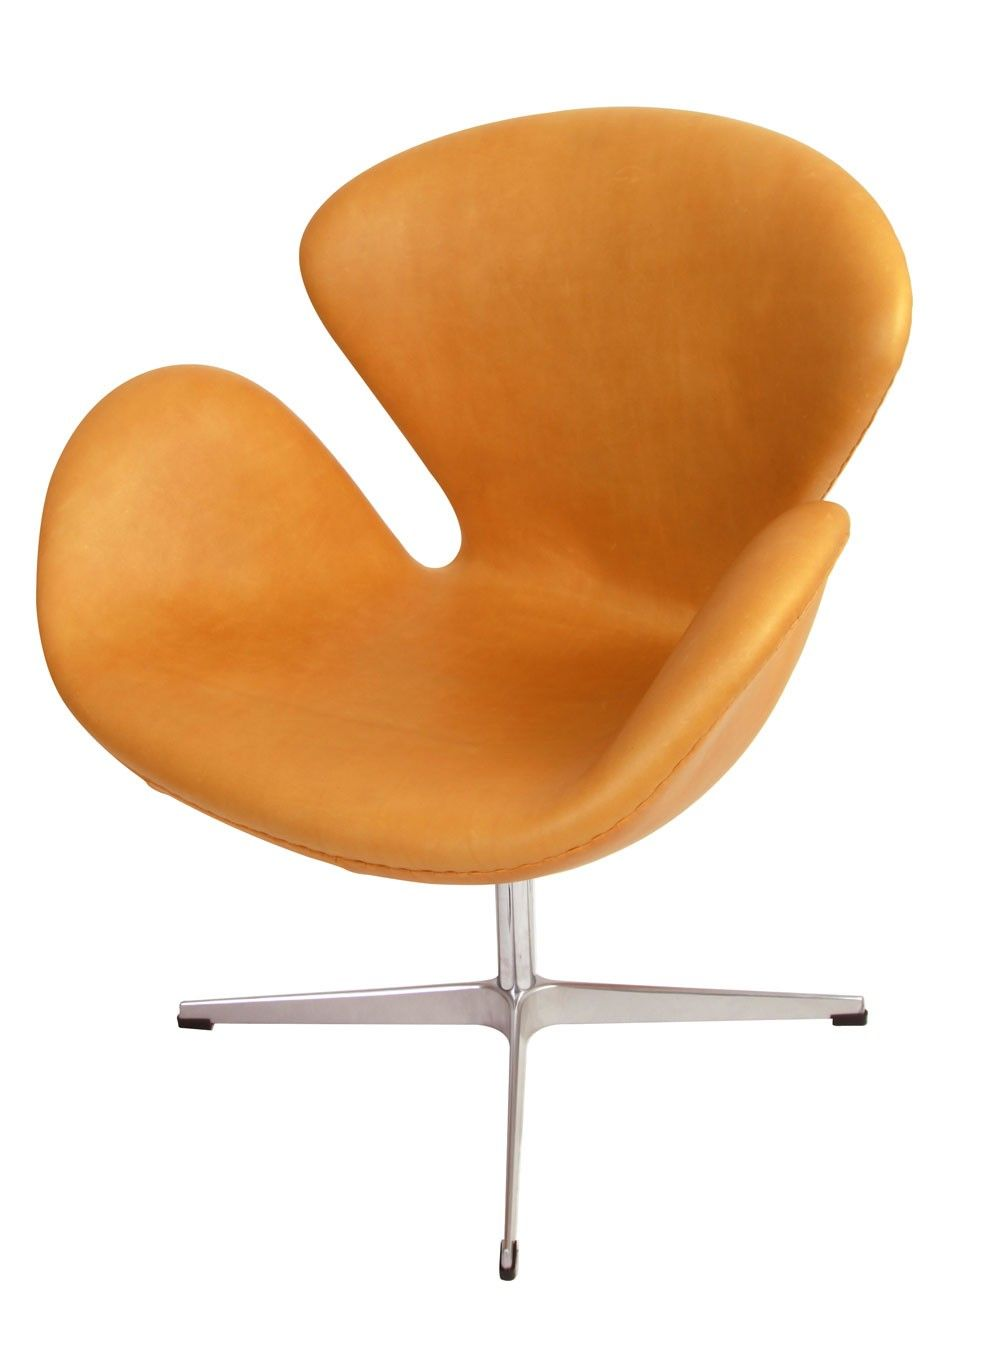 Arne Jacobsen Swan Chair Replica In Leather Ampersand Furniture